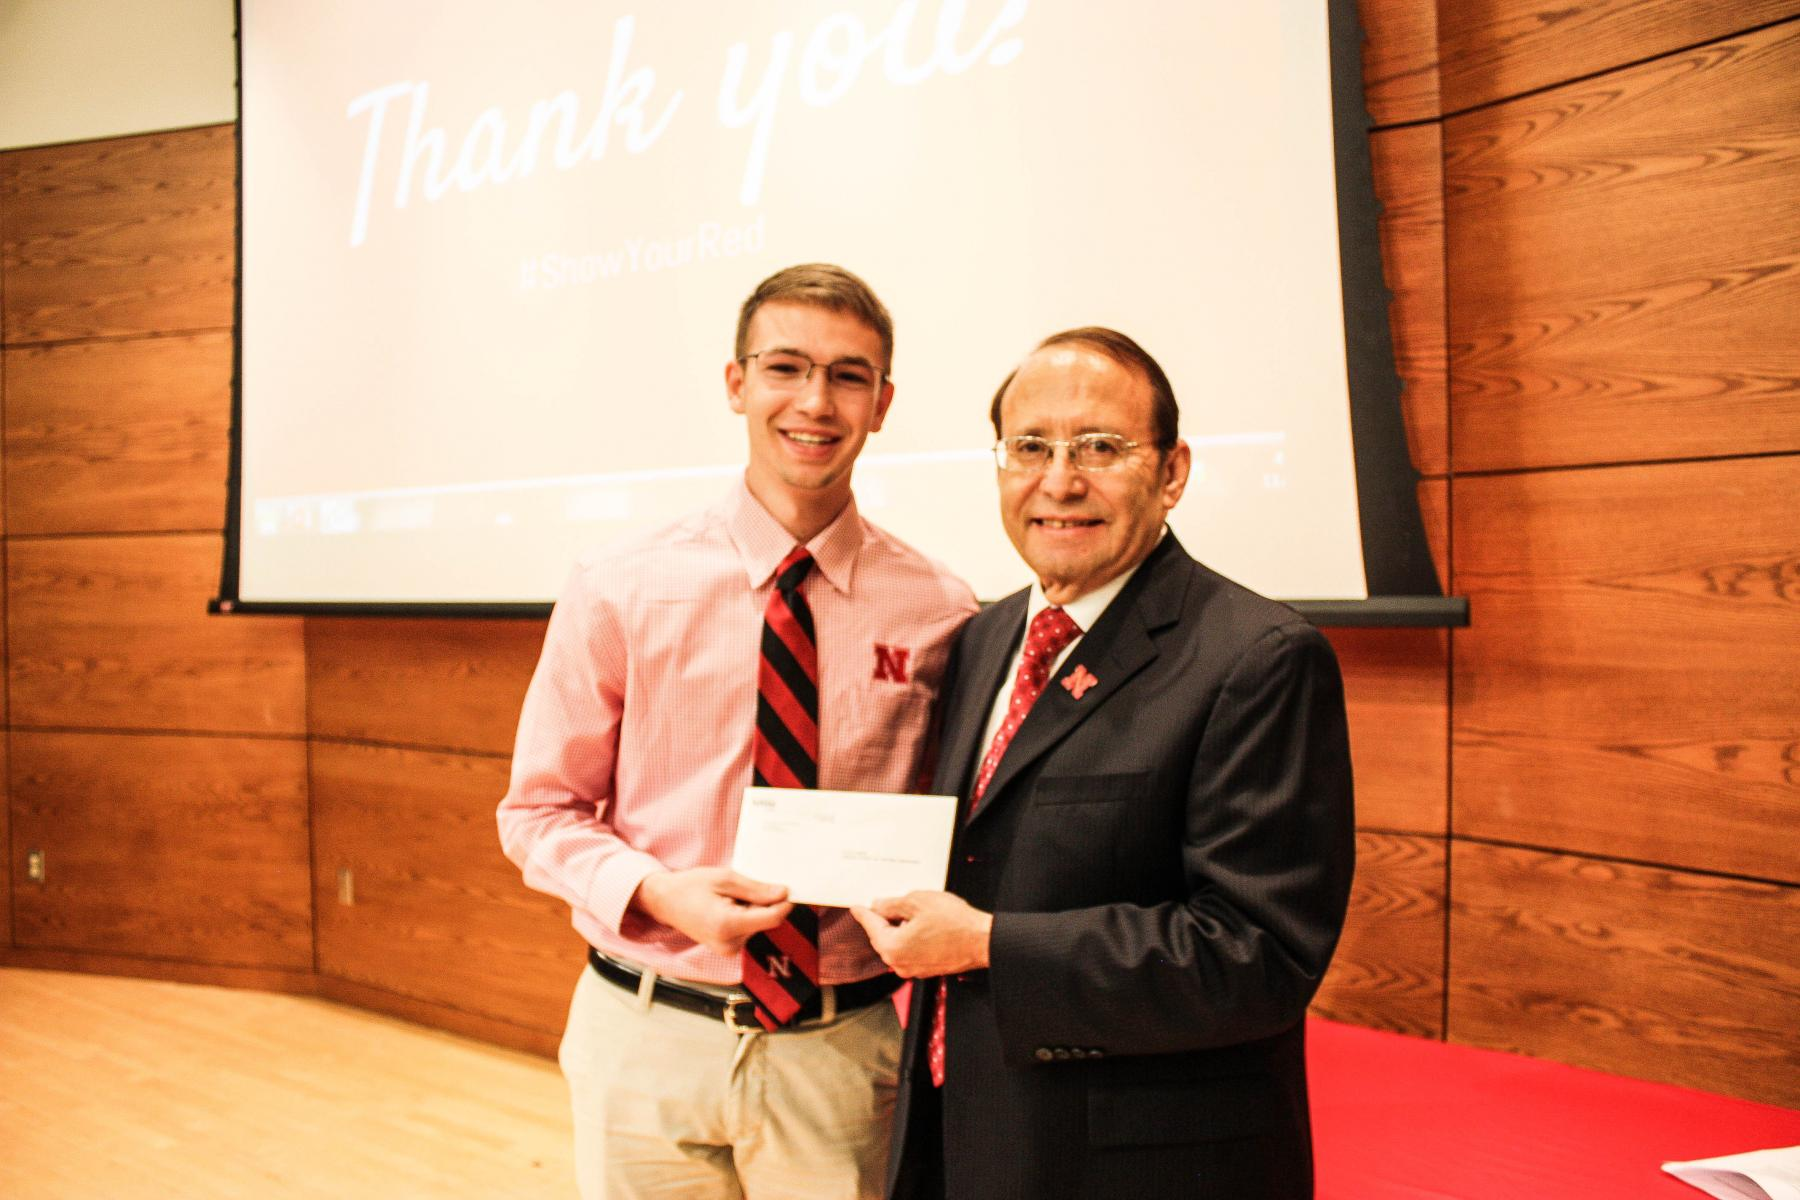 CSE Ambassadors president Colton Harper accepting the grant from Dr. Juan Franco.